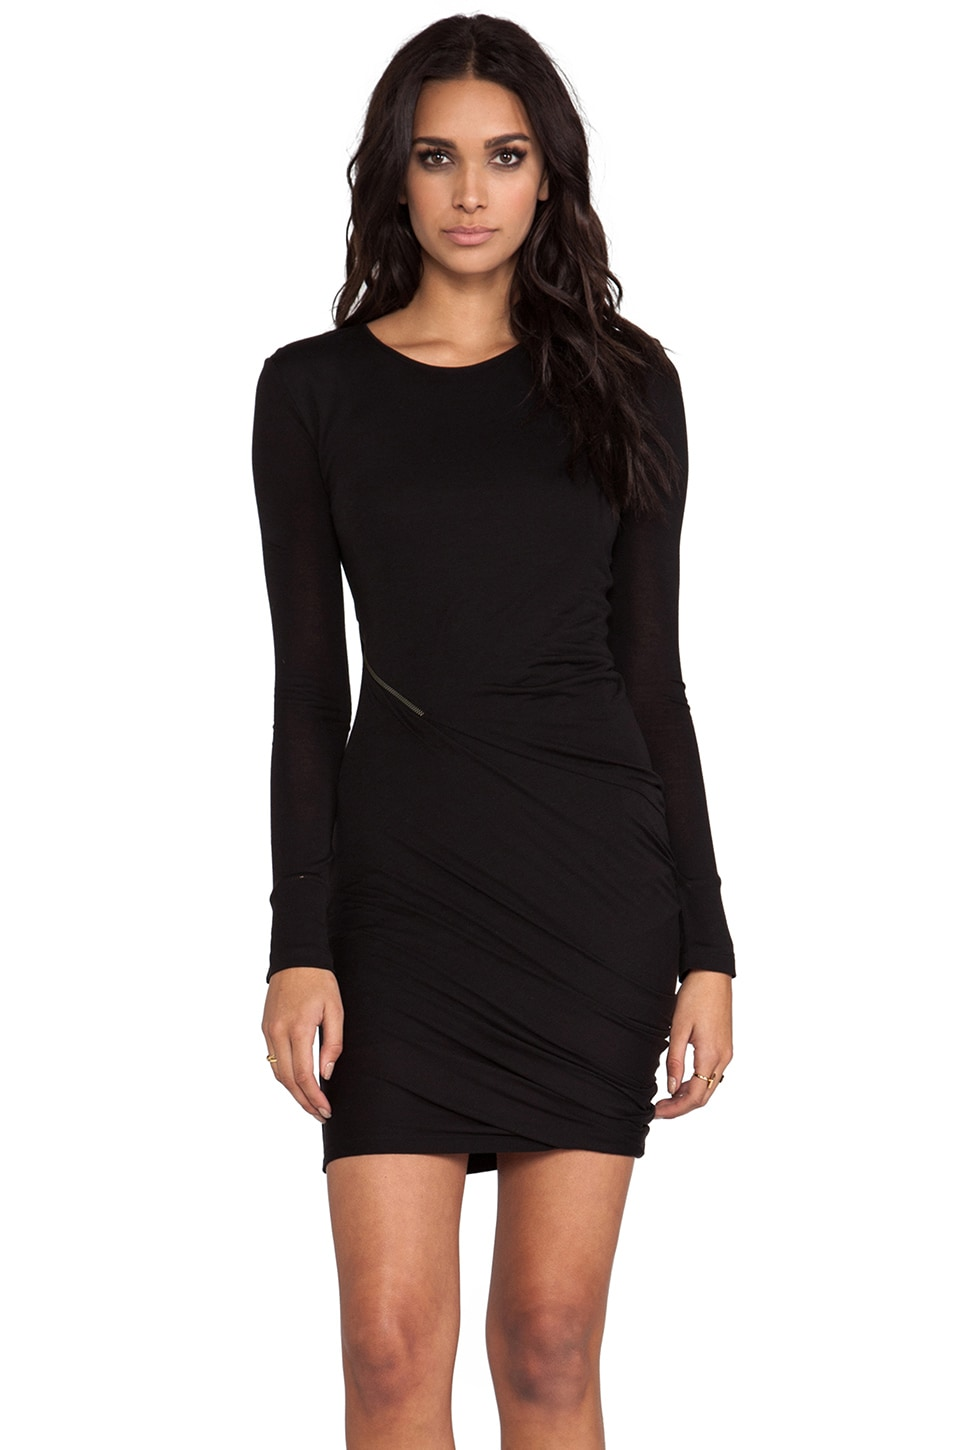 McQ Alexander McQueen Zip Off Long Sleeve Dress in Black